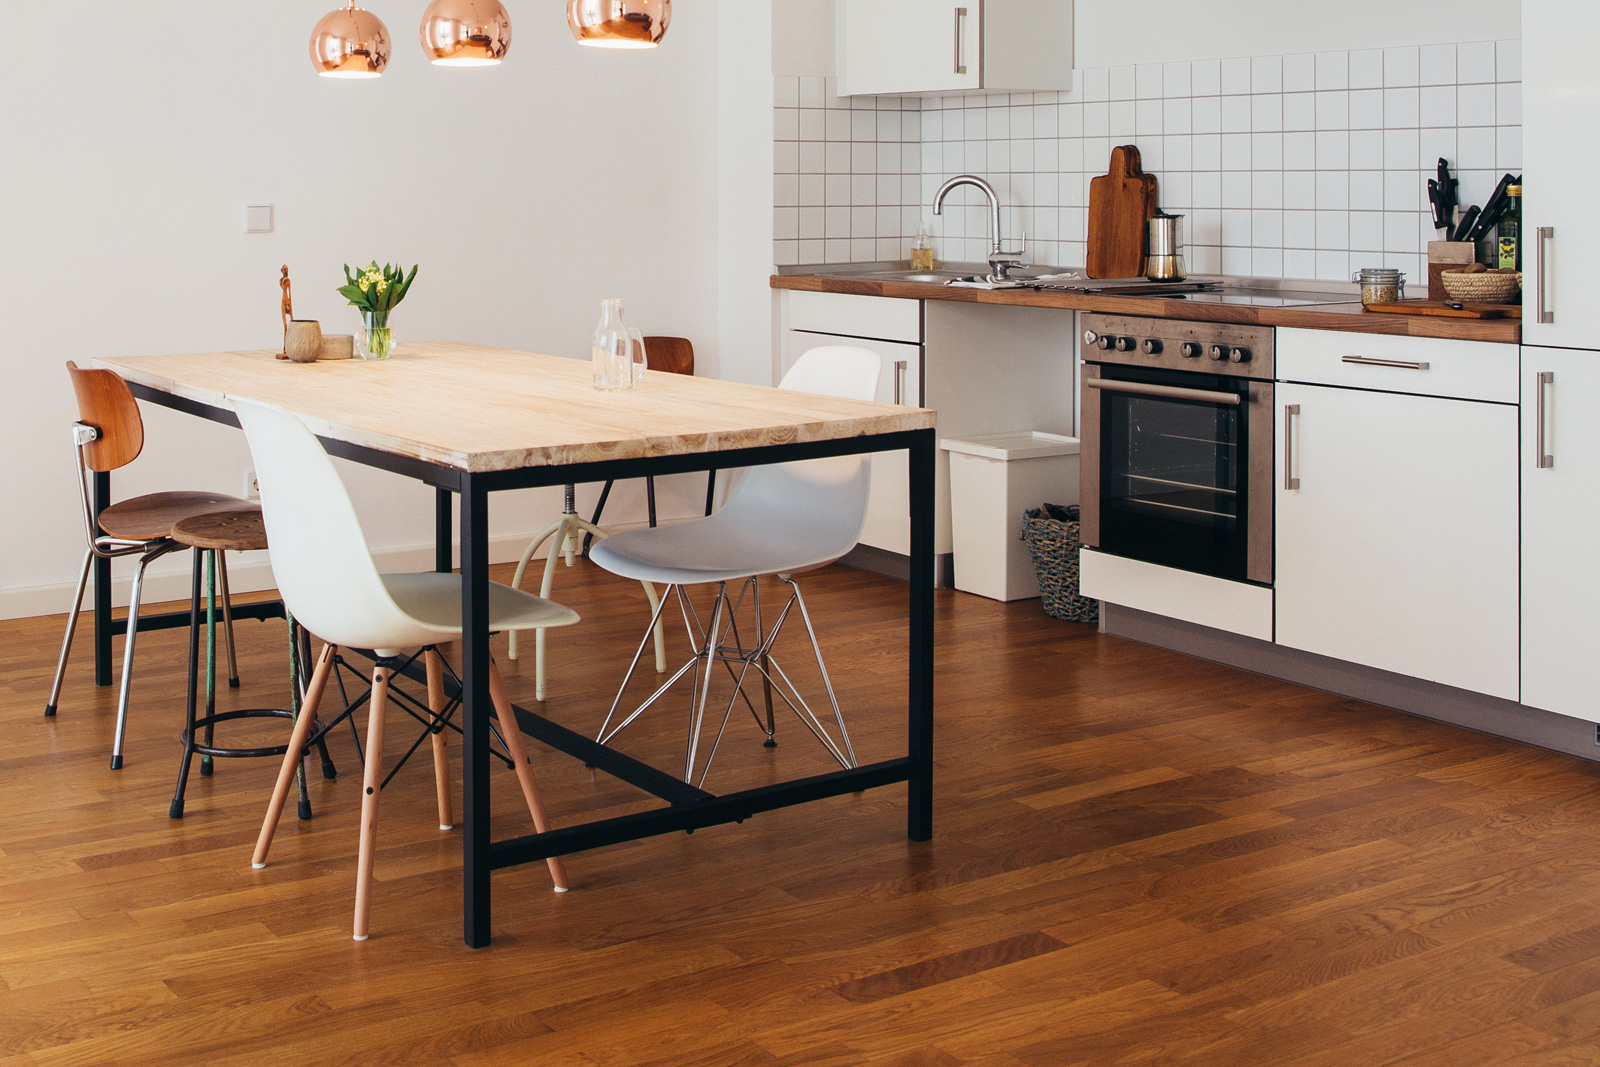 The best flooring options for kitchens